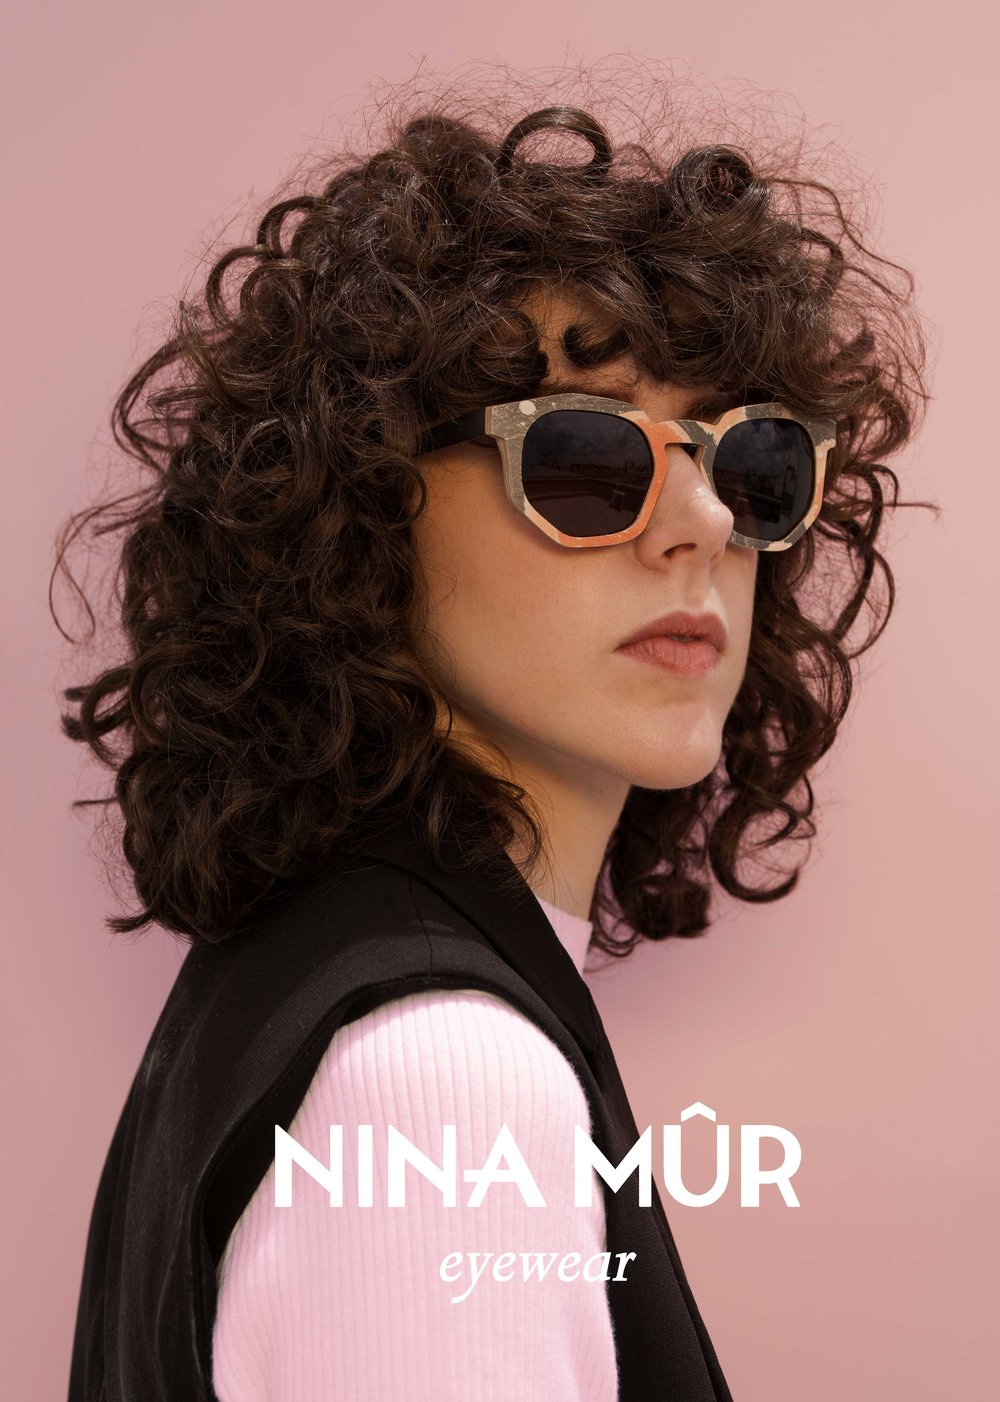 Art Direction — Paula Caballero  ———  Client — Nina Mur Eyewear  Photo — Ana Alcocer  Model — Brianda Fitz James Stuart  Make Up — Fer Martinez mk  Styling — Sandrinne Gingembre